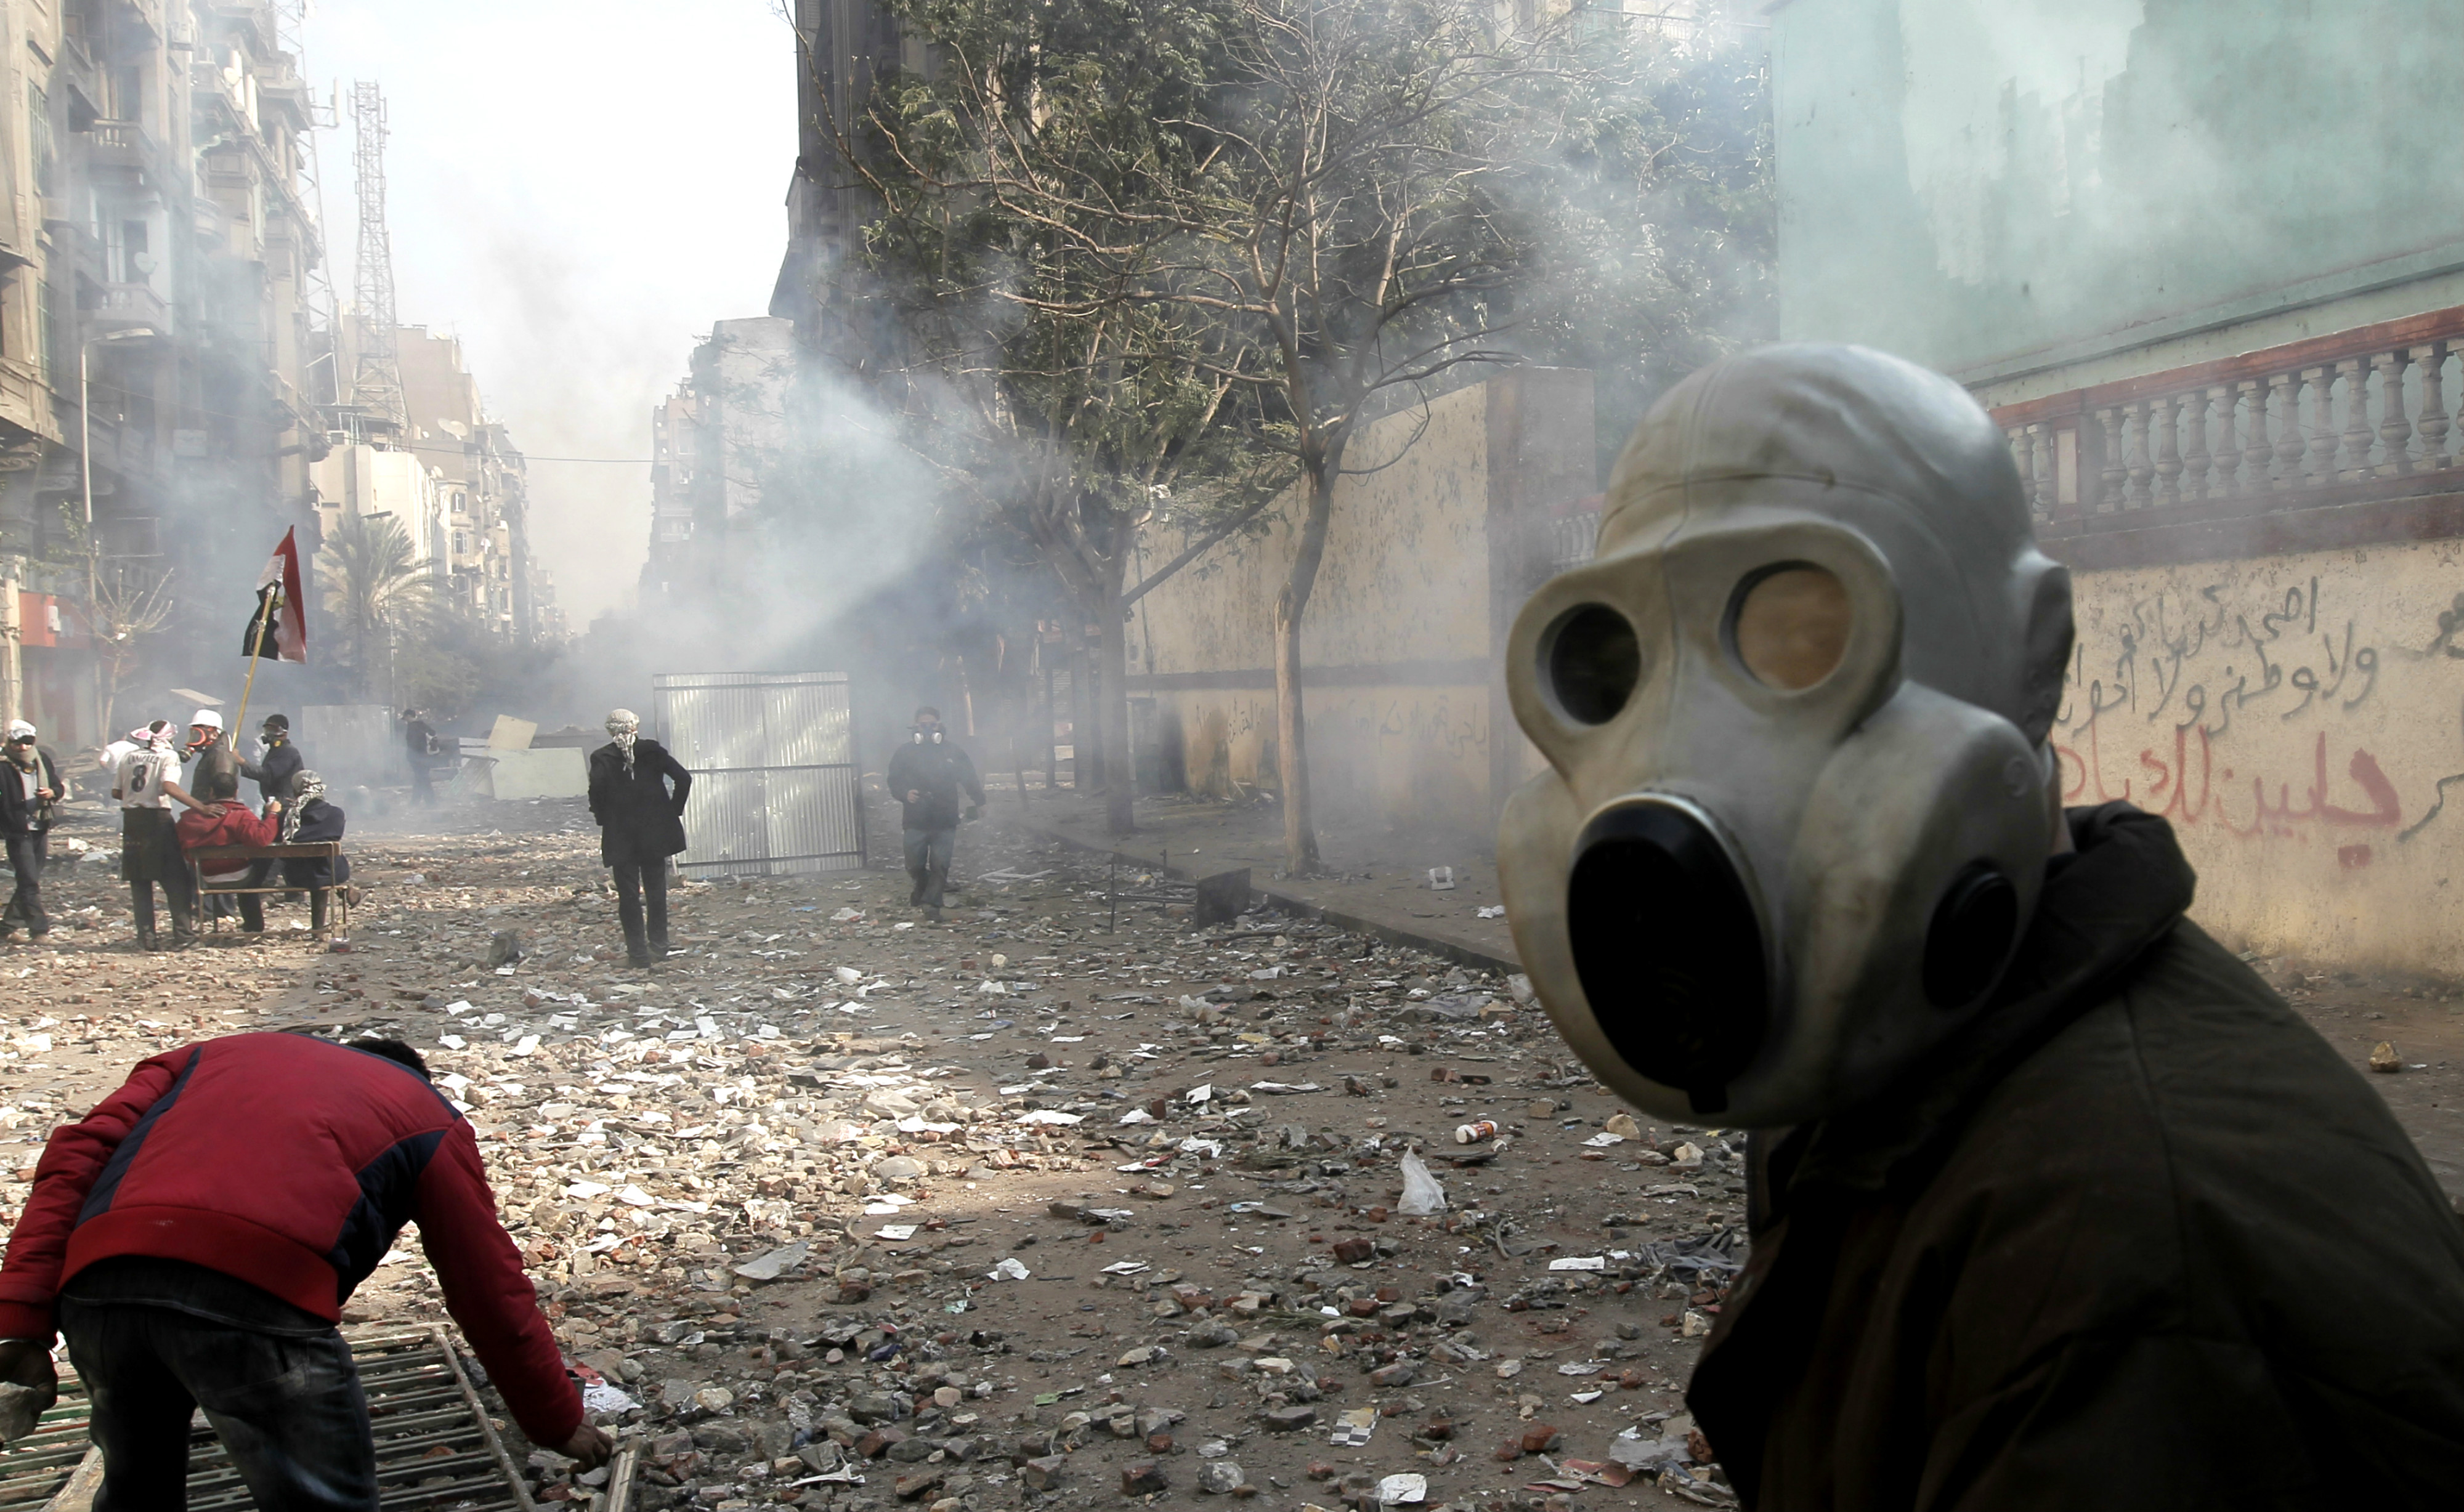 An Egyptian protester protects his face from tear gas during clashes with riot police near Tahrir Square, Cairo, in November 2011 (AFP)